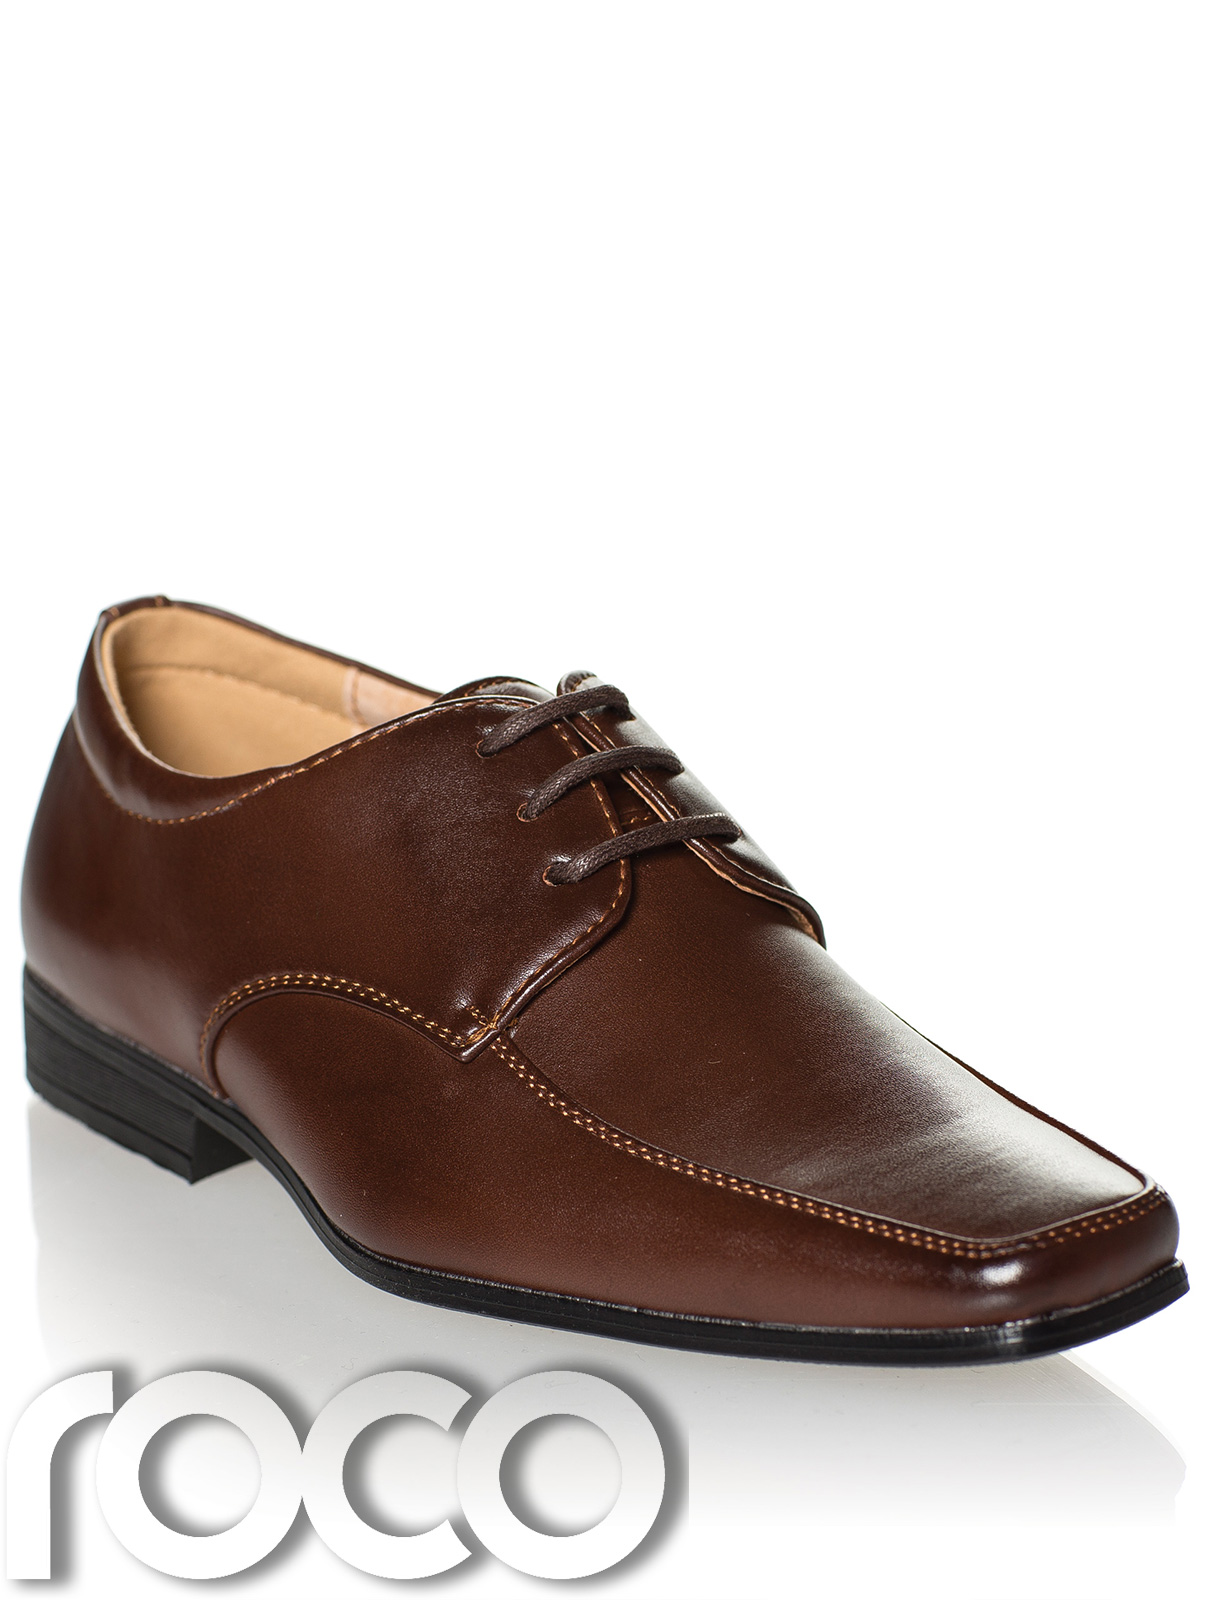 c3e61f409 Details about Boys Dark Brown Shoes, Boys Formal Shoes, Boys Wedding Shoes,  Page Boy Shoe